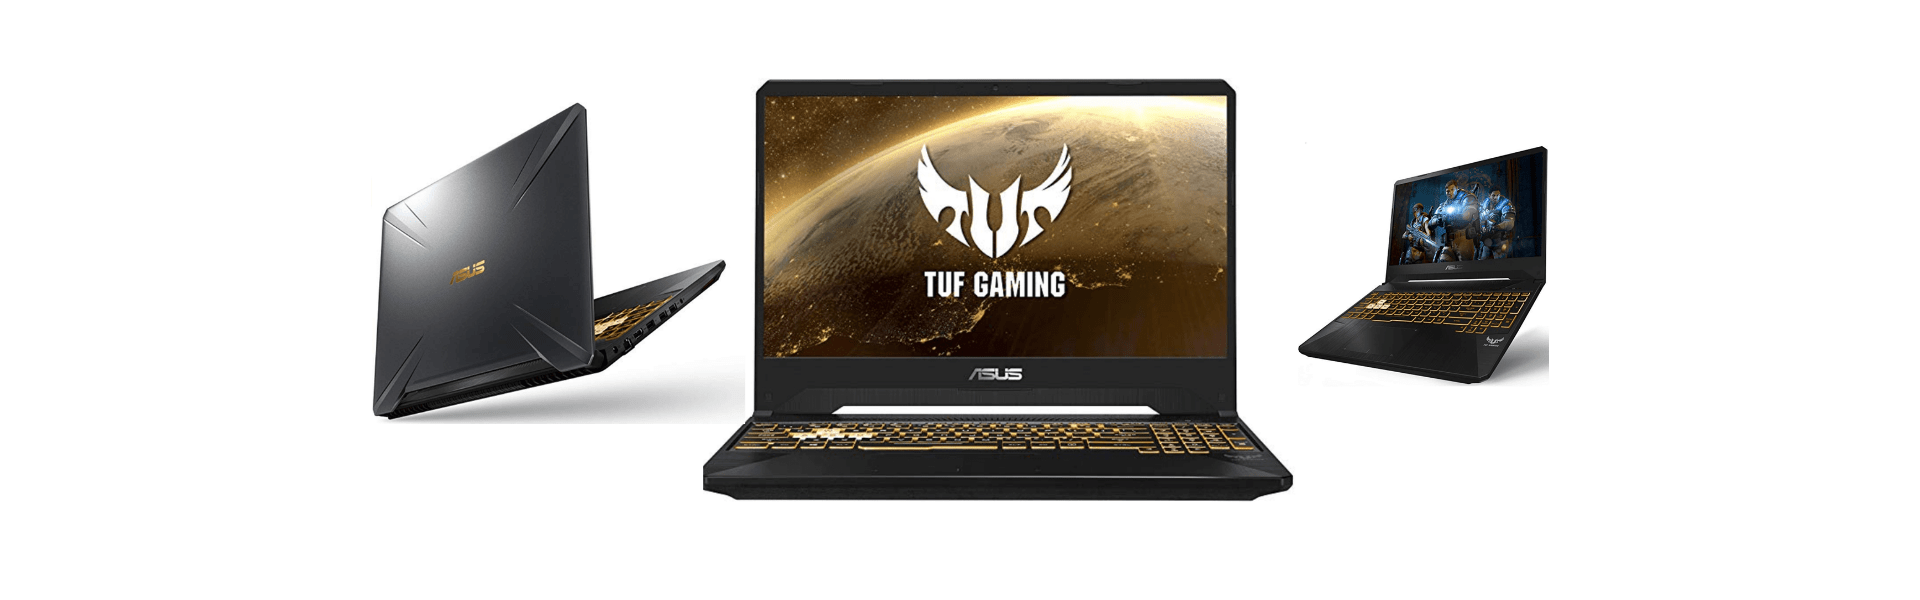 Asus TUF Gaming Laptop Review